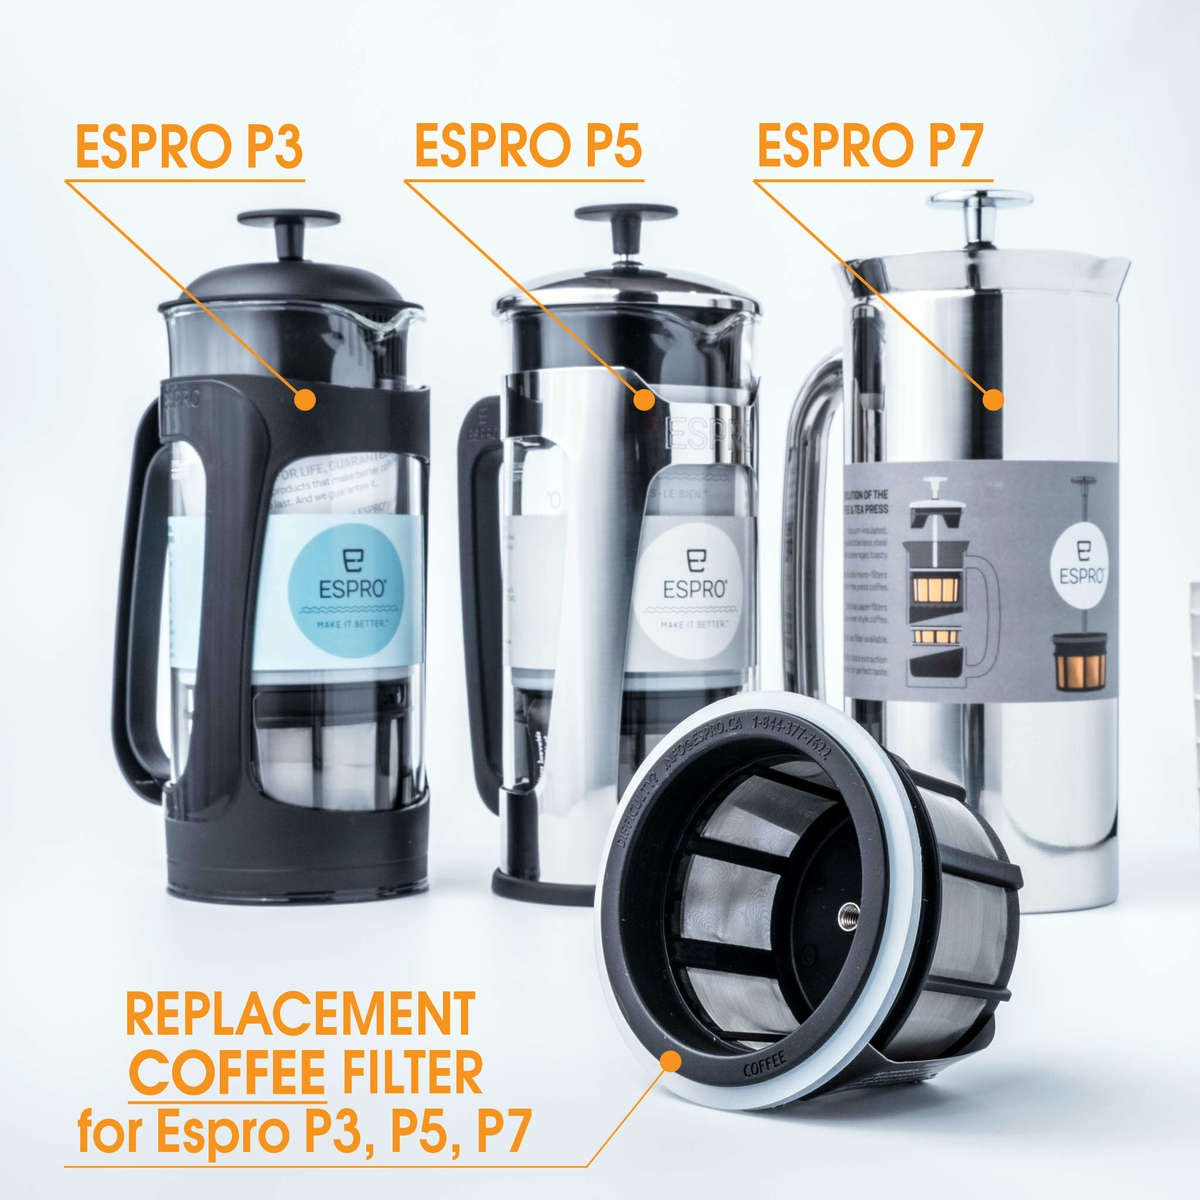 The Espro P5 Gl Press Offers A Never Before Designed Unique Coffee Plunger Feature Superior Filtering System With Not One But Two Micro Filters